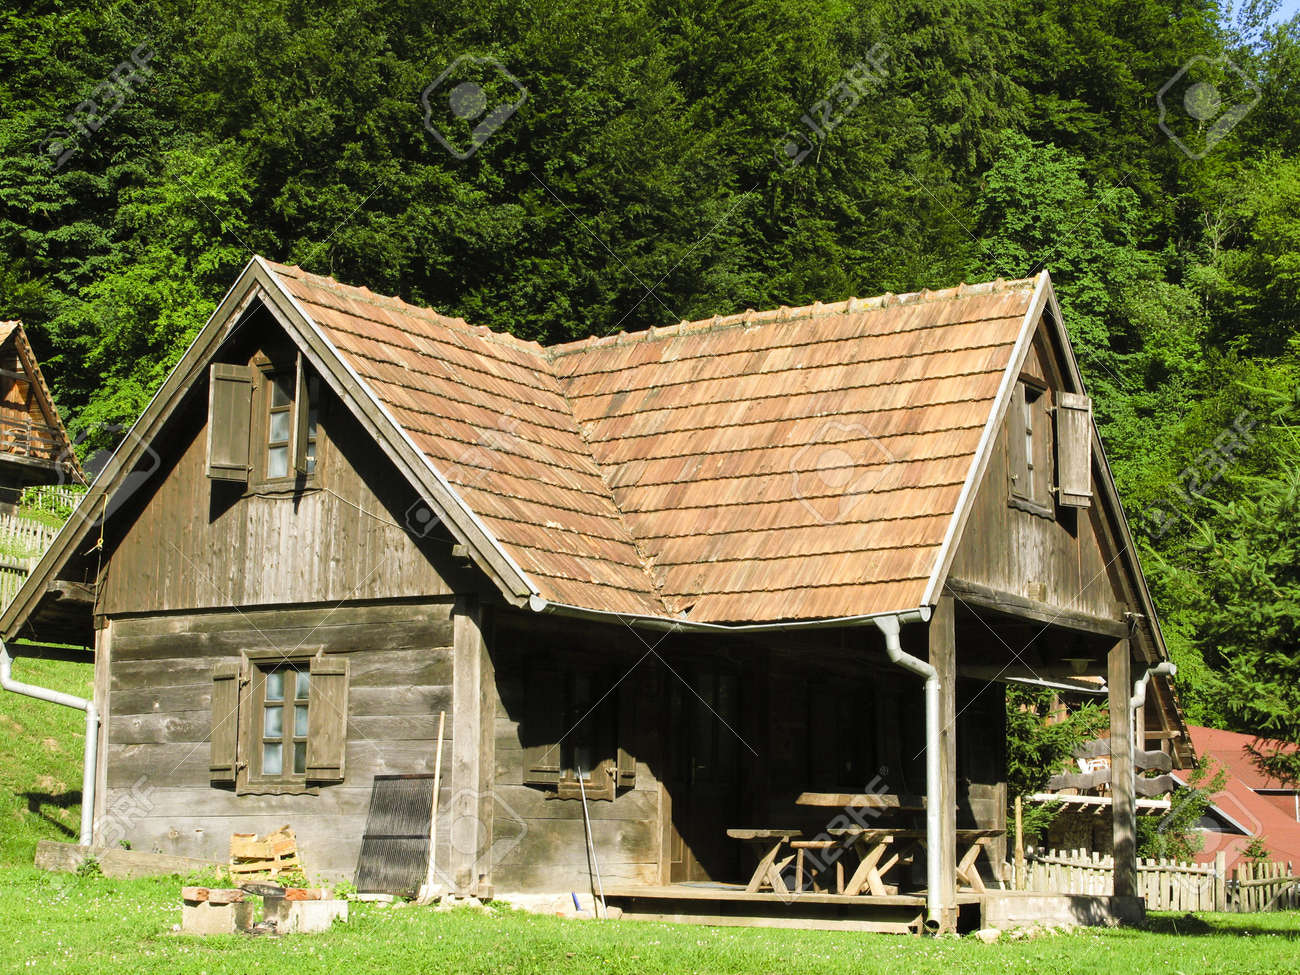 Astounding Old Wooden Country House In Central Europe Balkans Croatia Largest Home Design Picture Inspirations Pitcheantrous